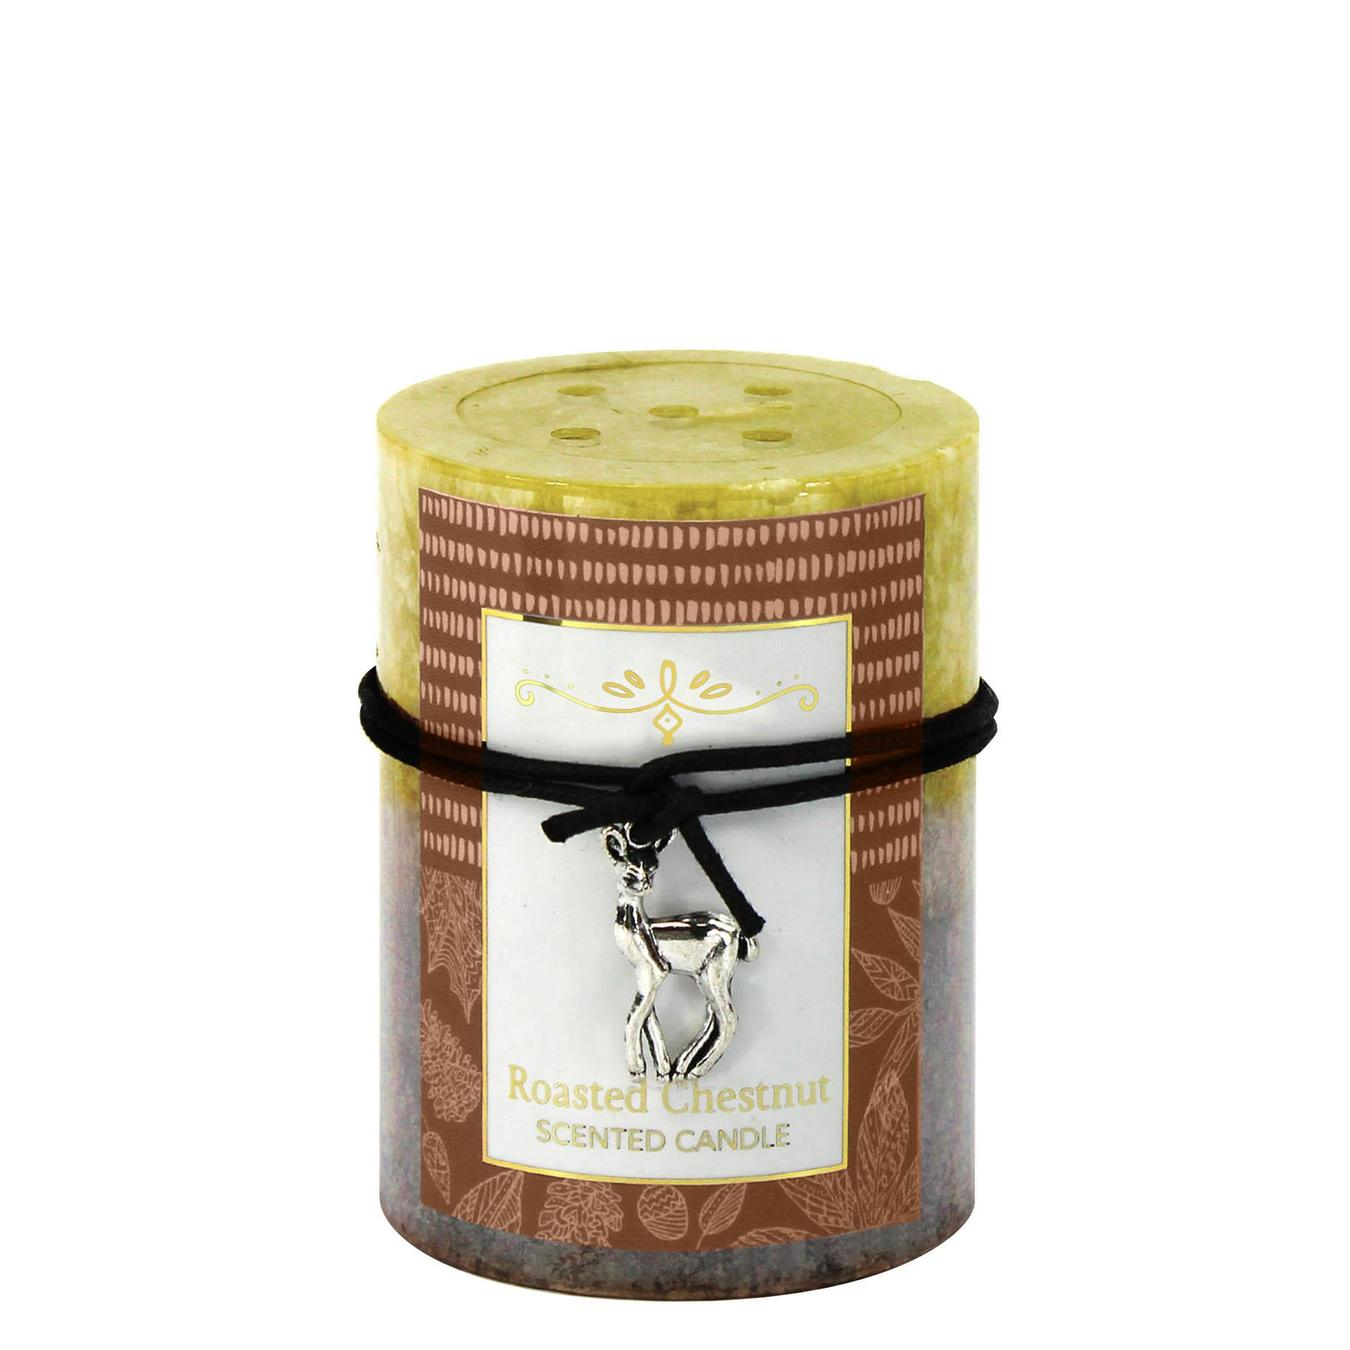 Roasted Chestnut Scented Candle 3X4